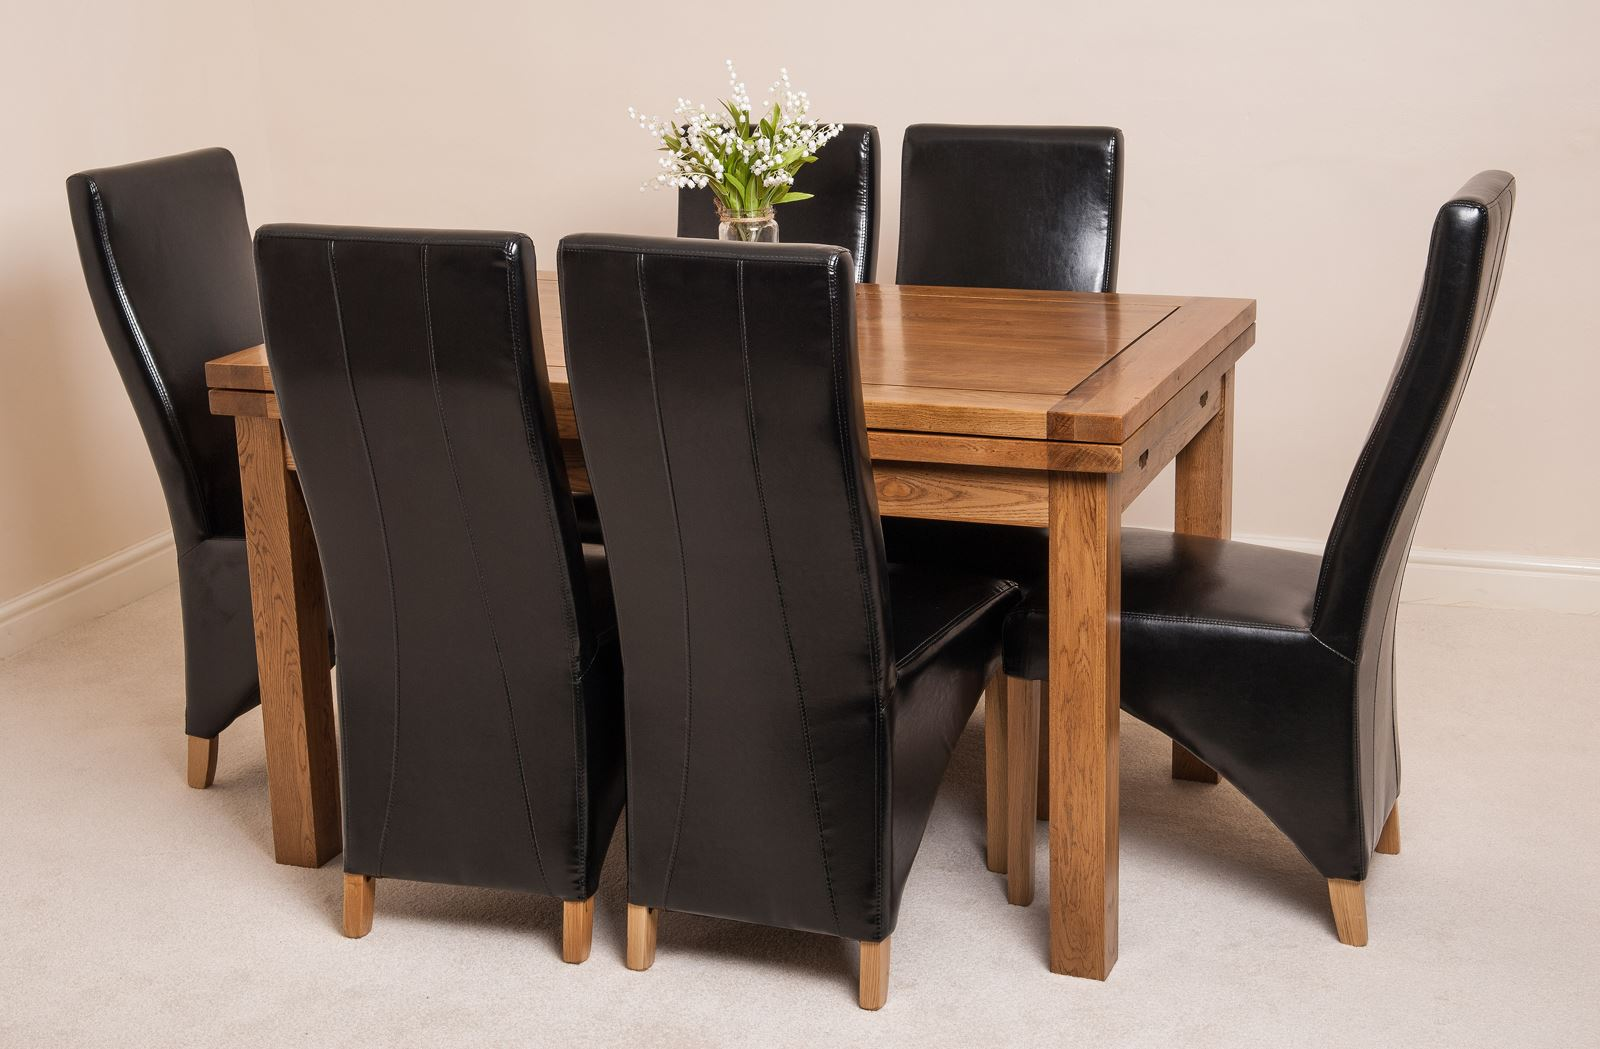 FARMHOUSE RUSTIC SOLID OAK 160cm EXTENDING DINING TABLE 6 LOLA LEATHER